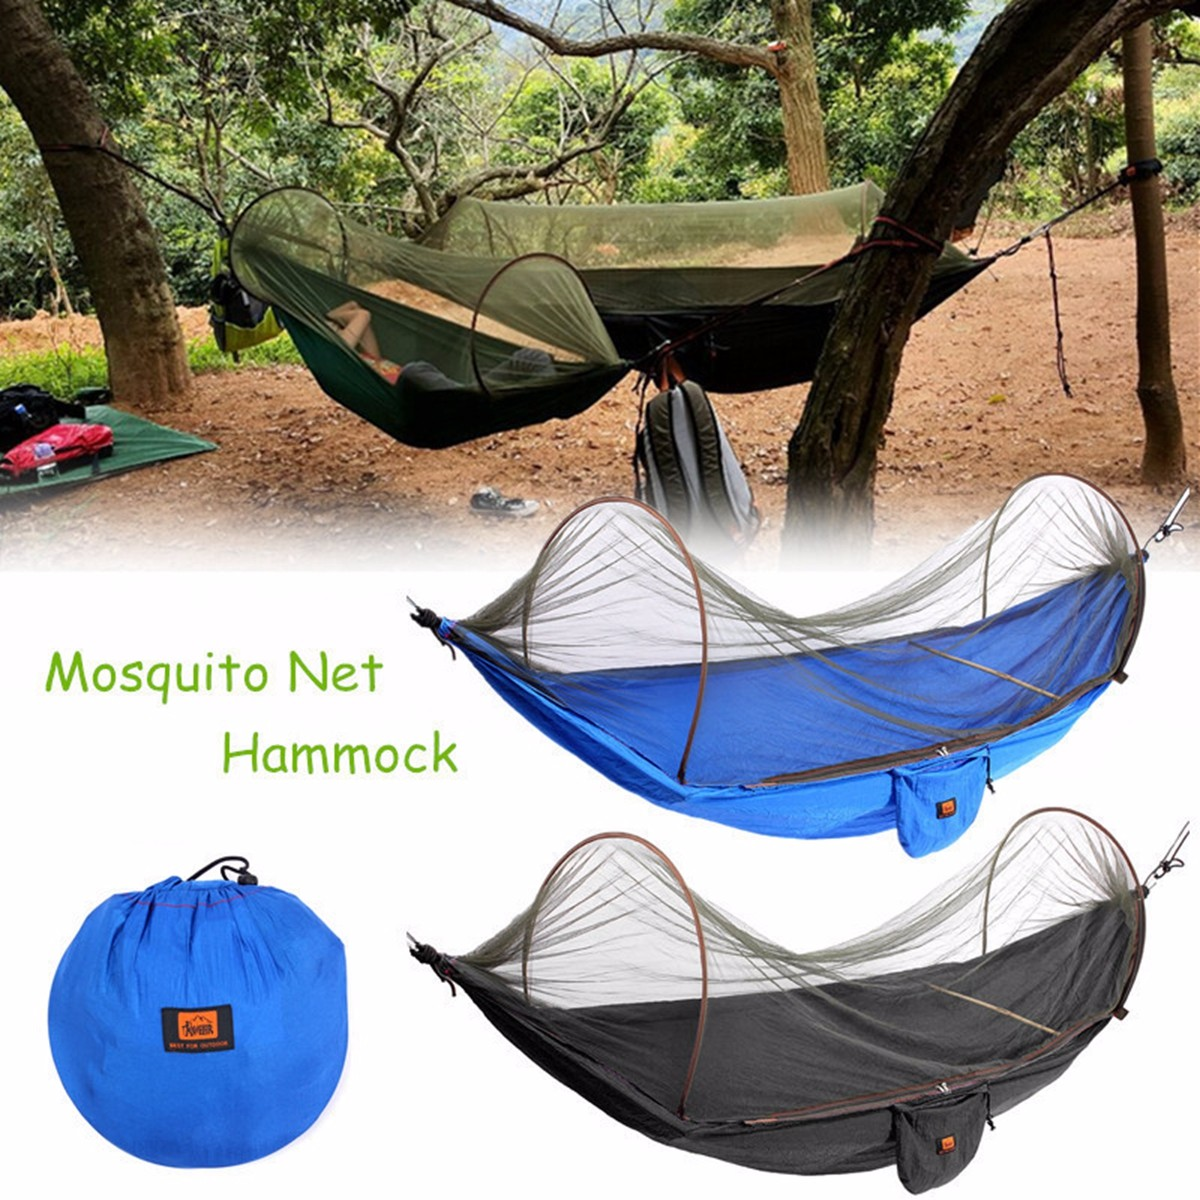 Portable Parachute Camping Hammock Outdoor Camping Sleeping Hanging Bed with Mosquito Net for Indoor Outdoor Use -Carry Bag Included